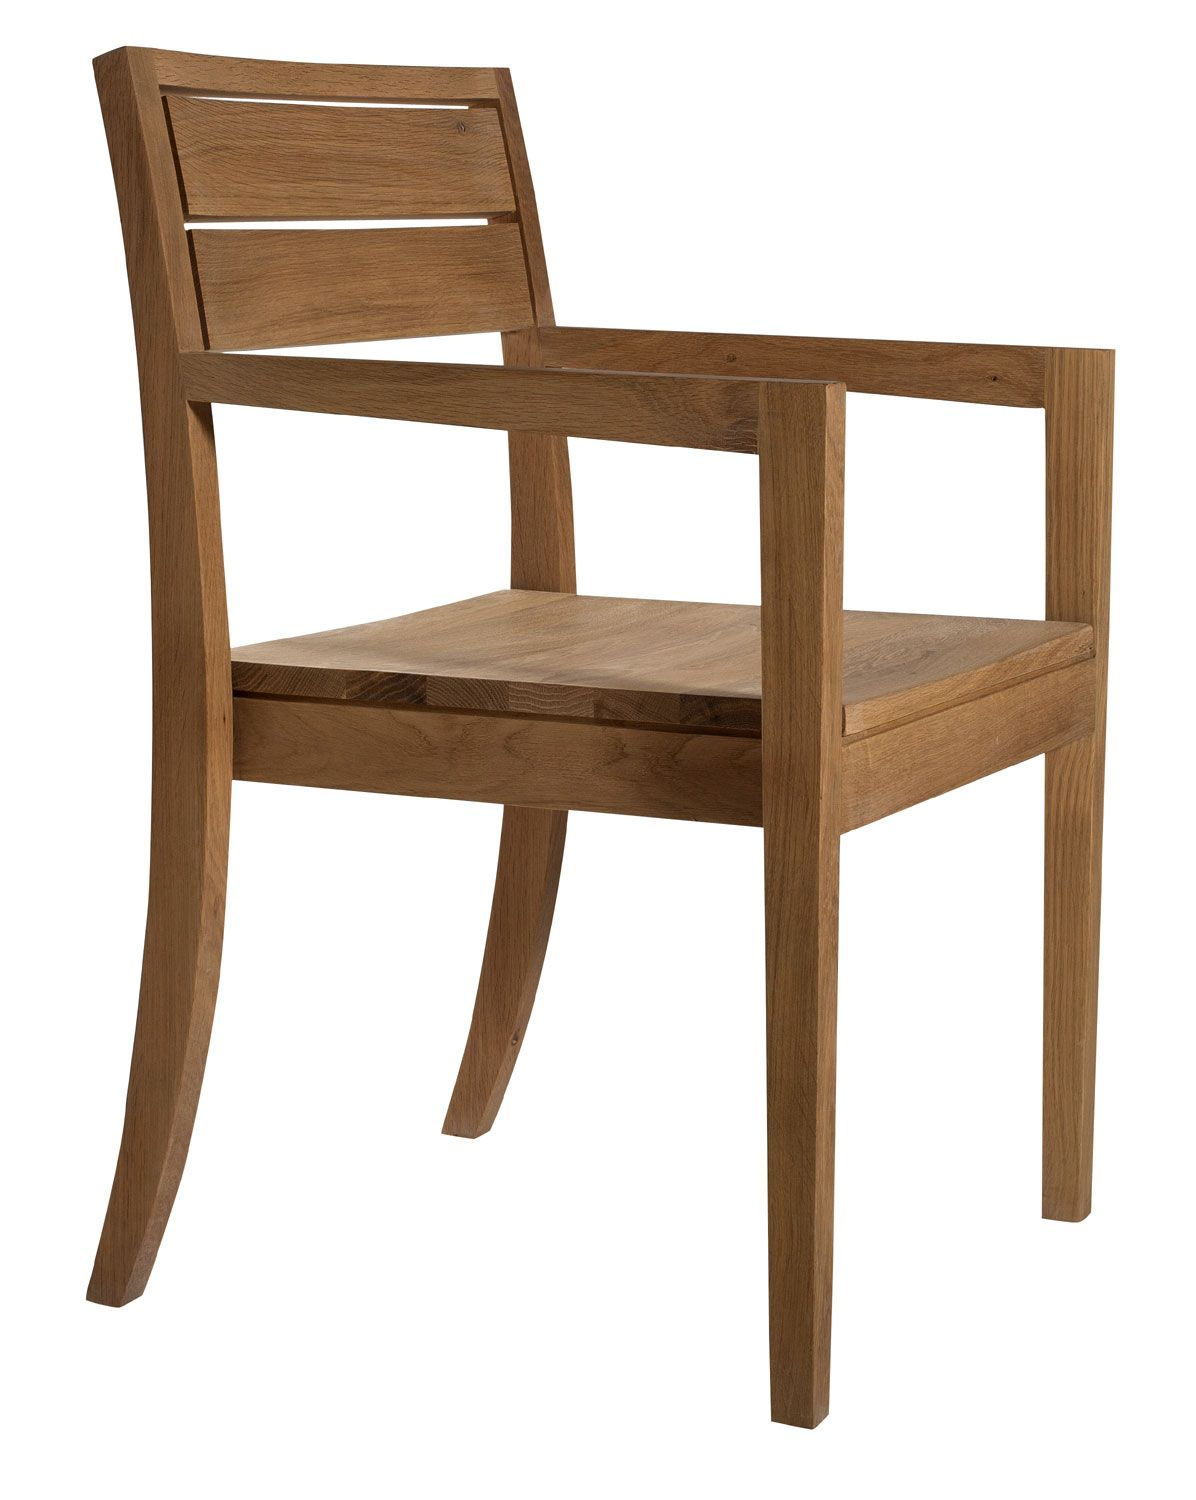 Ethnicraft Ls 2 Oak Chair With Armrest | Solid Wood Furniture